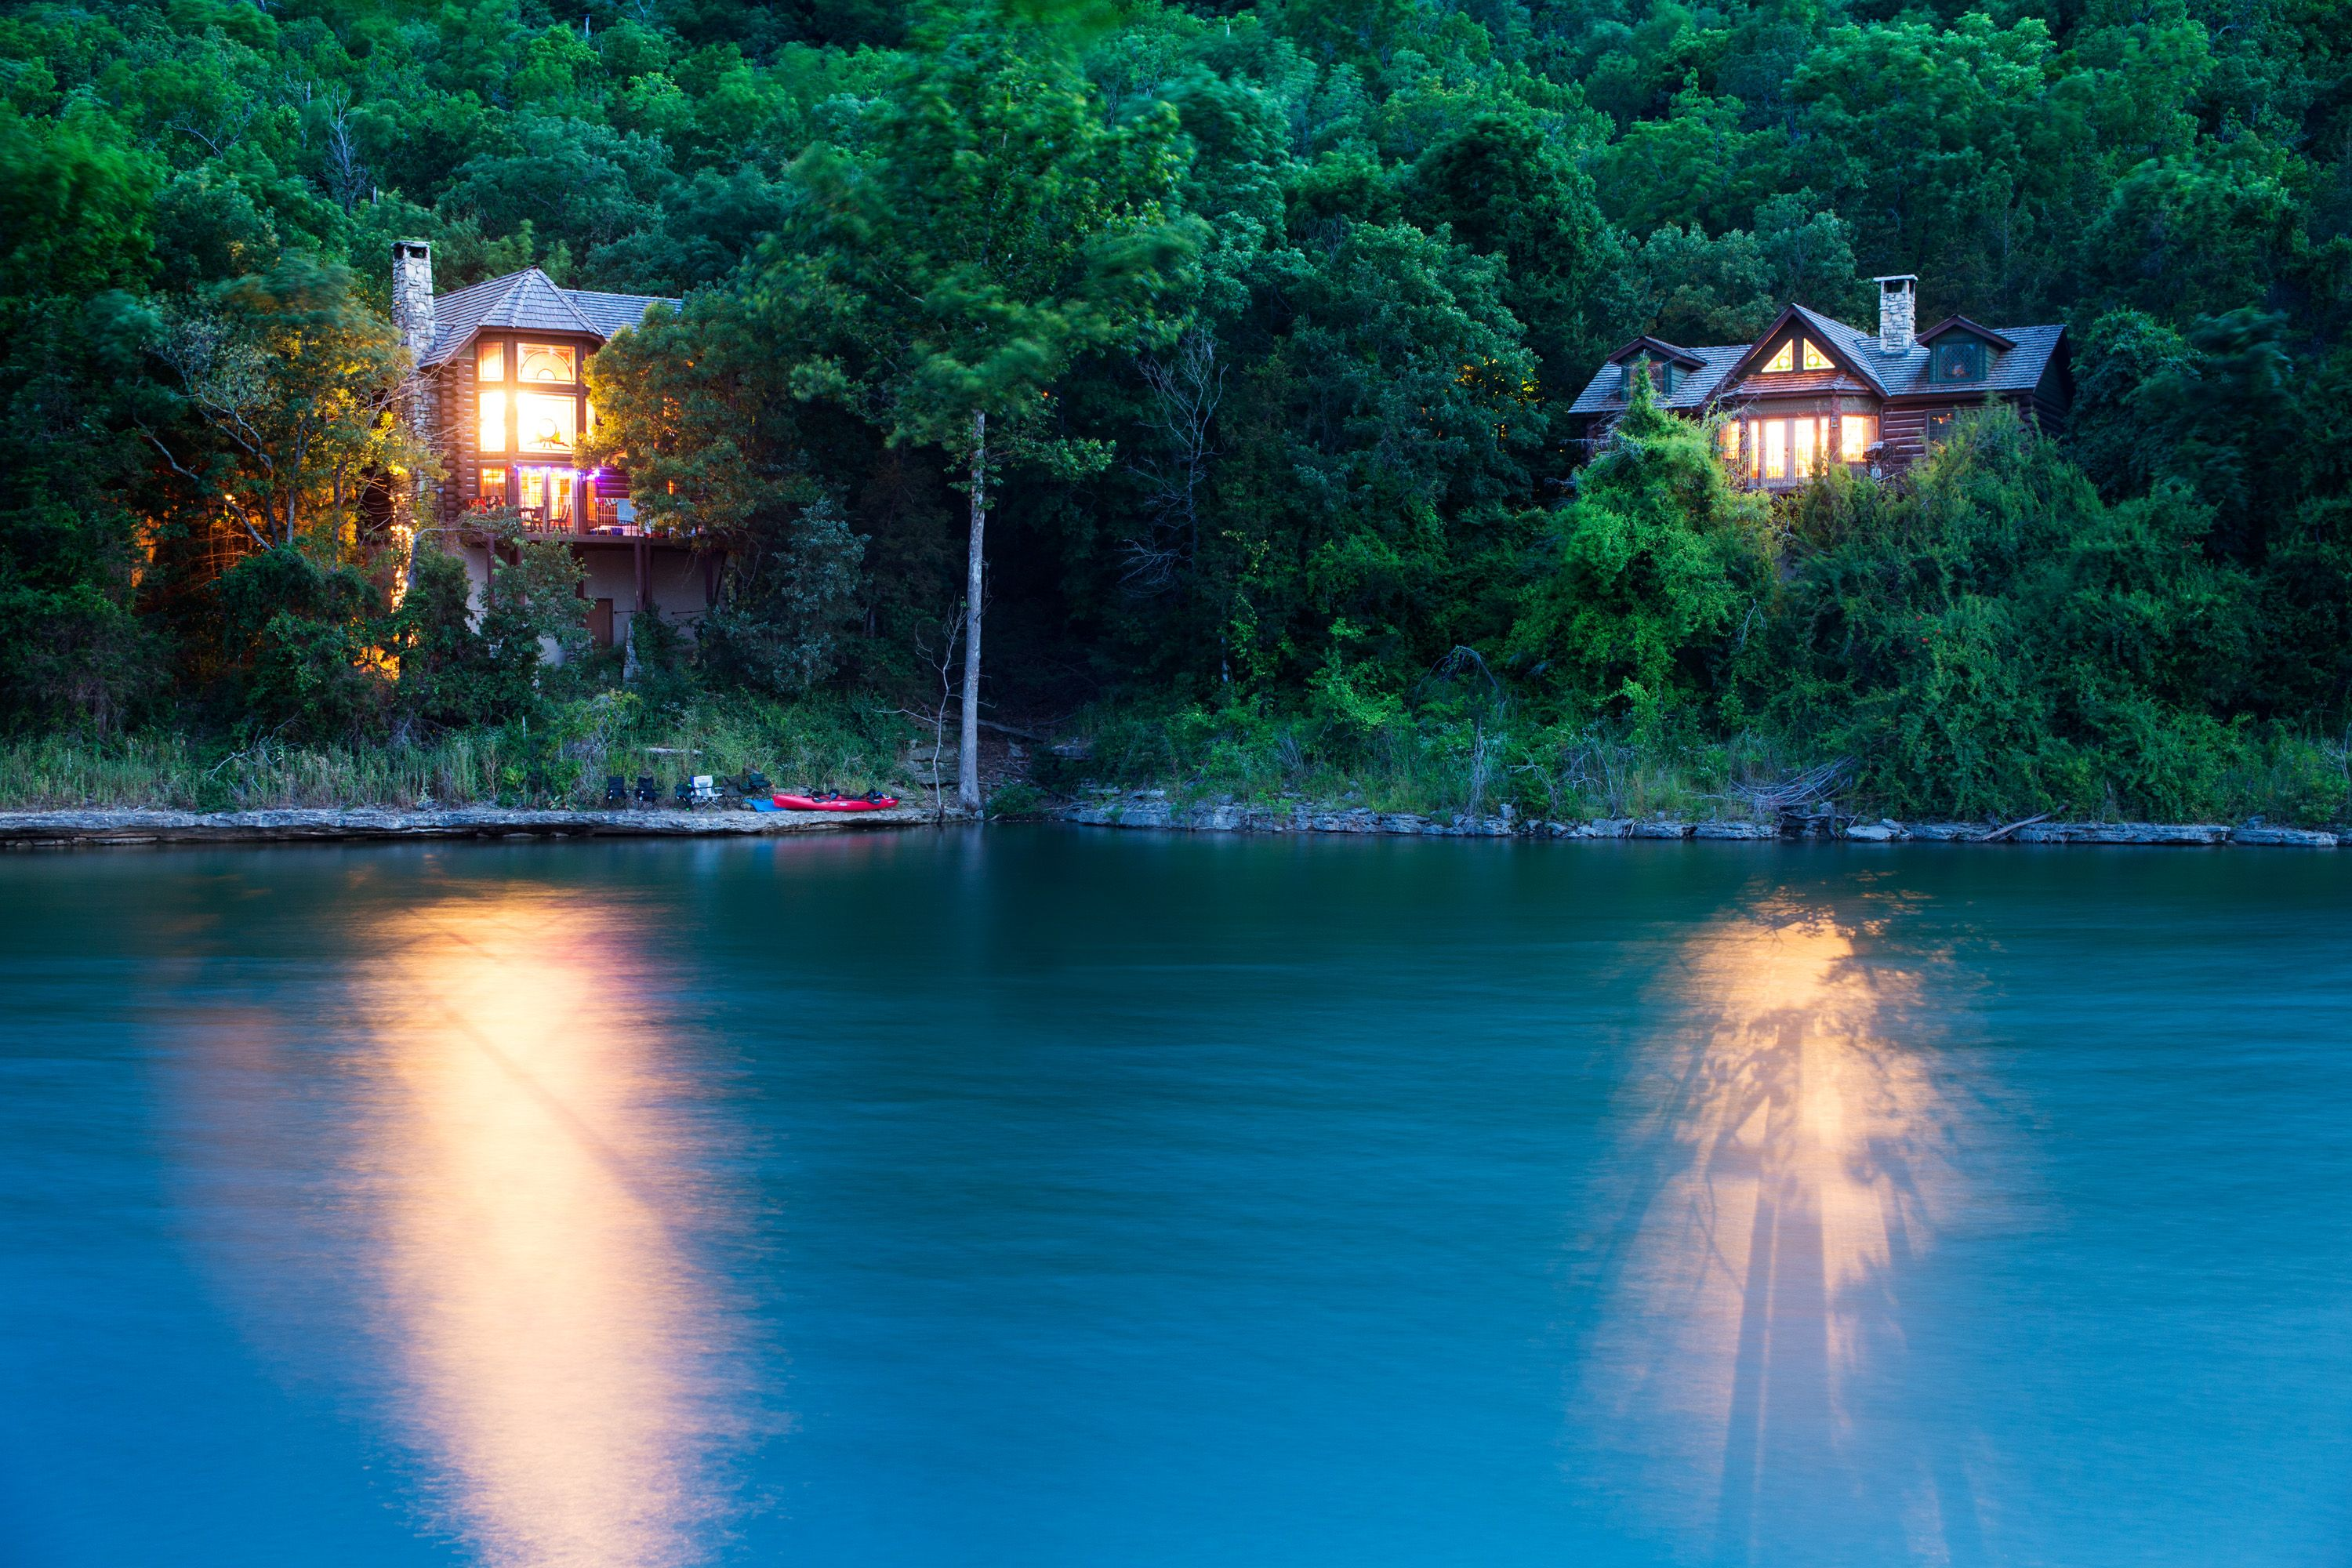 Lakeview Cabins At Big Cedar Http Www Big Cedar Com Page Private Log Cabins Aspx Lakeview Cabin Lake Cabins Lake View